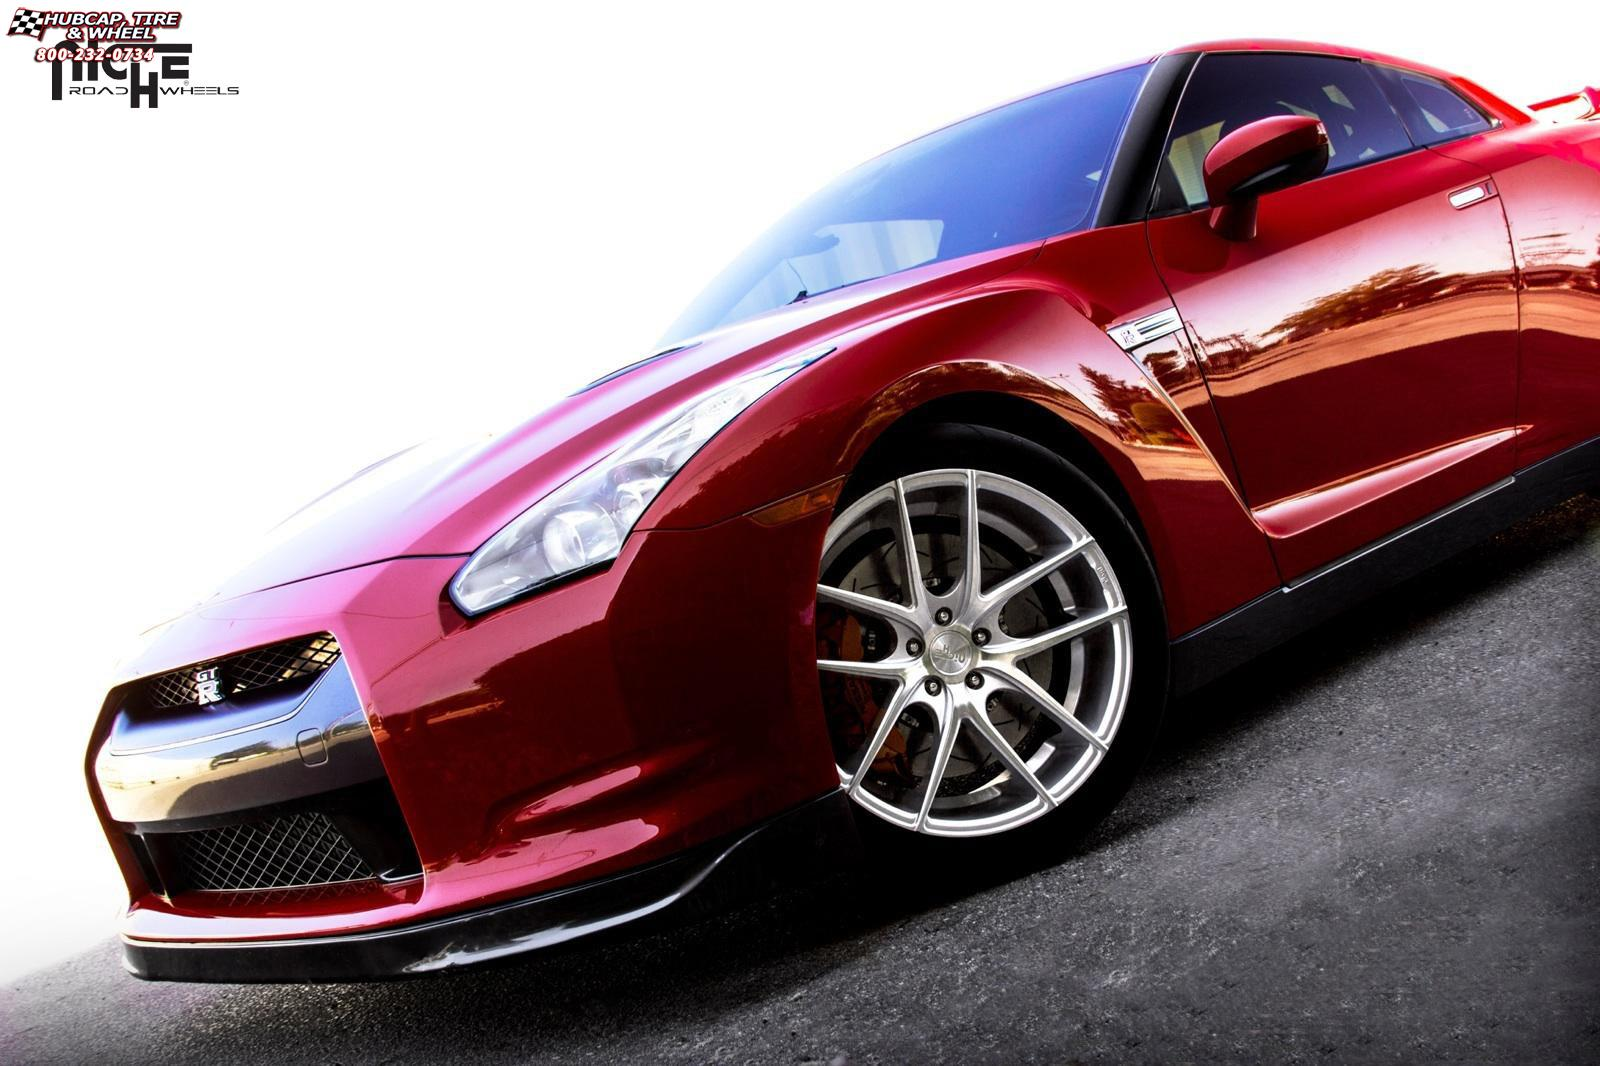 vehicle gallery/nissan gt r niche targa m131  Silver & Machined wheels and rims